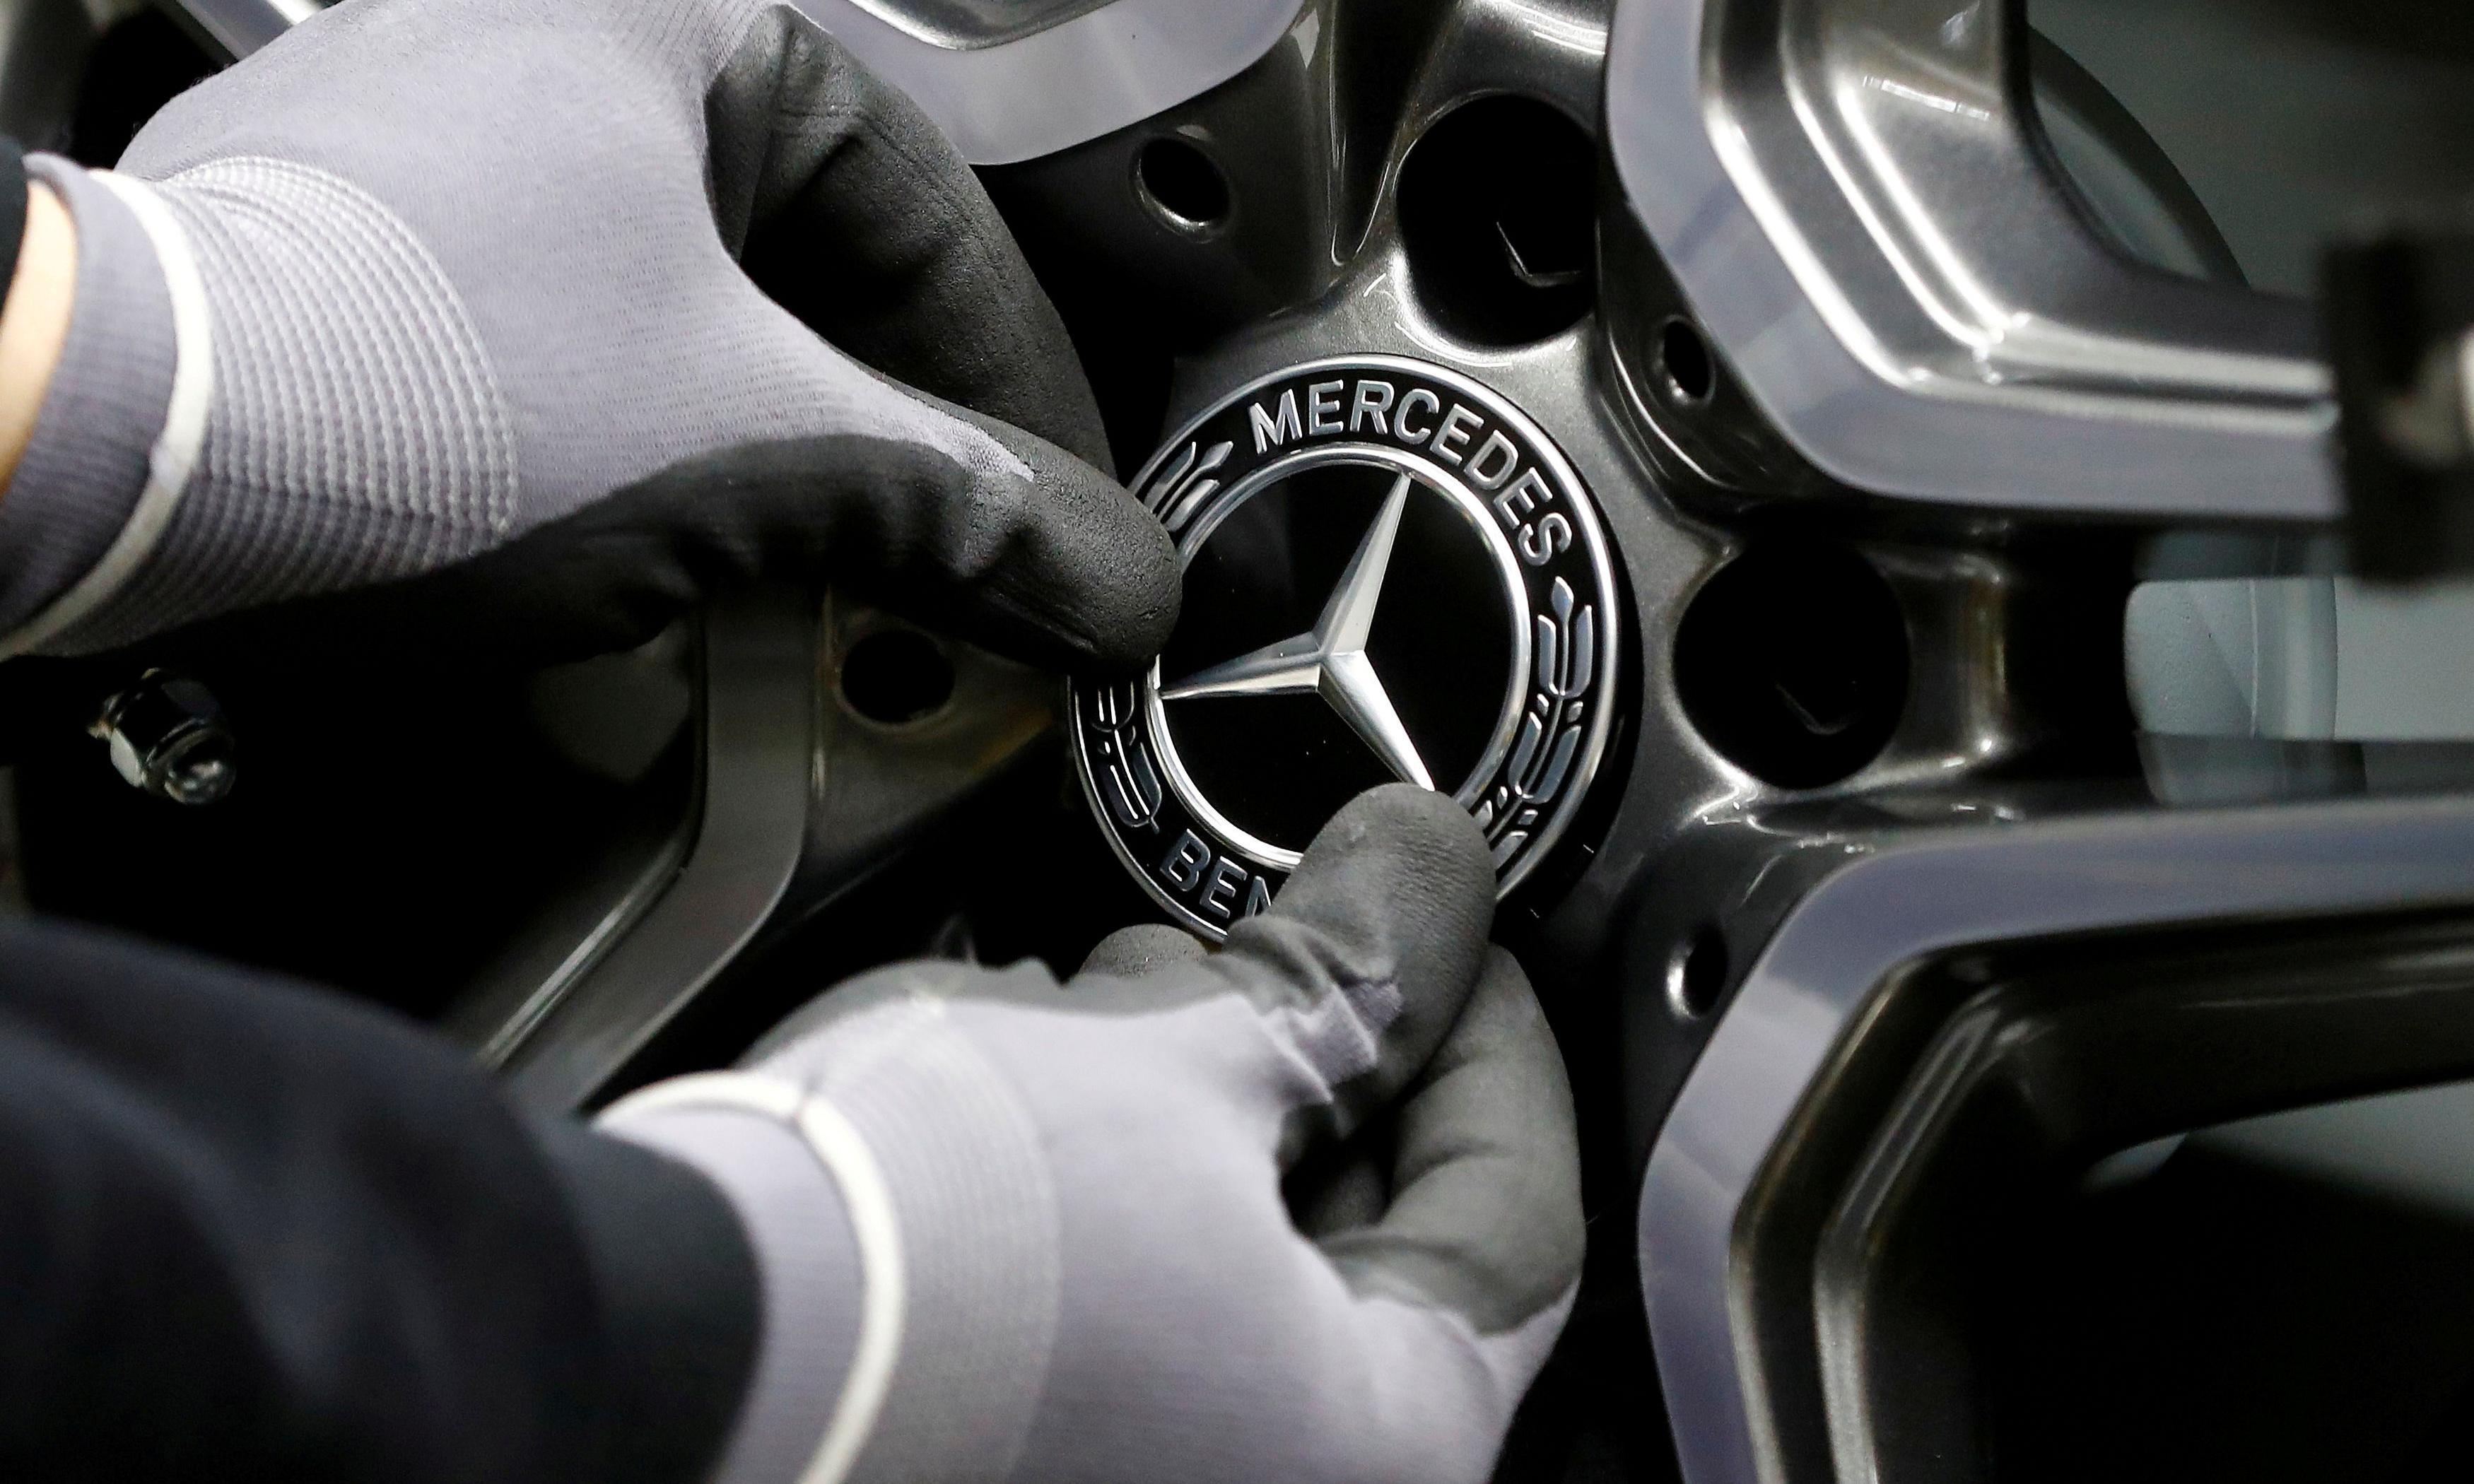 Mercedes-Benz to axe more than 1,000 jobs in cost-cutting drive